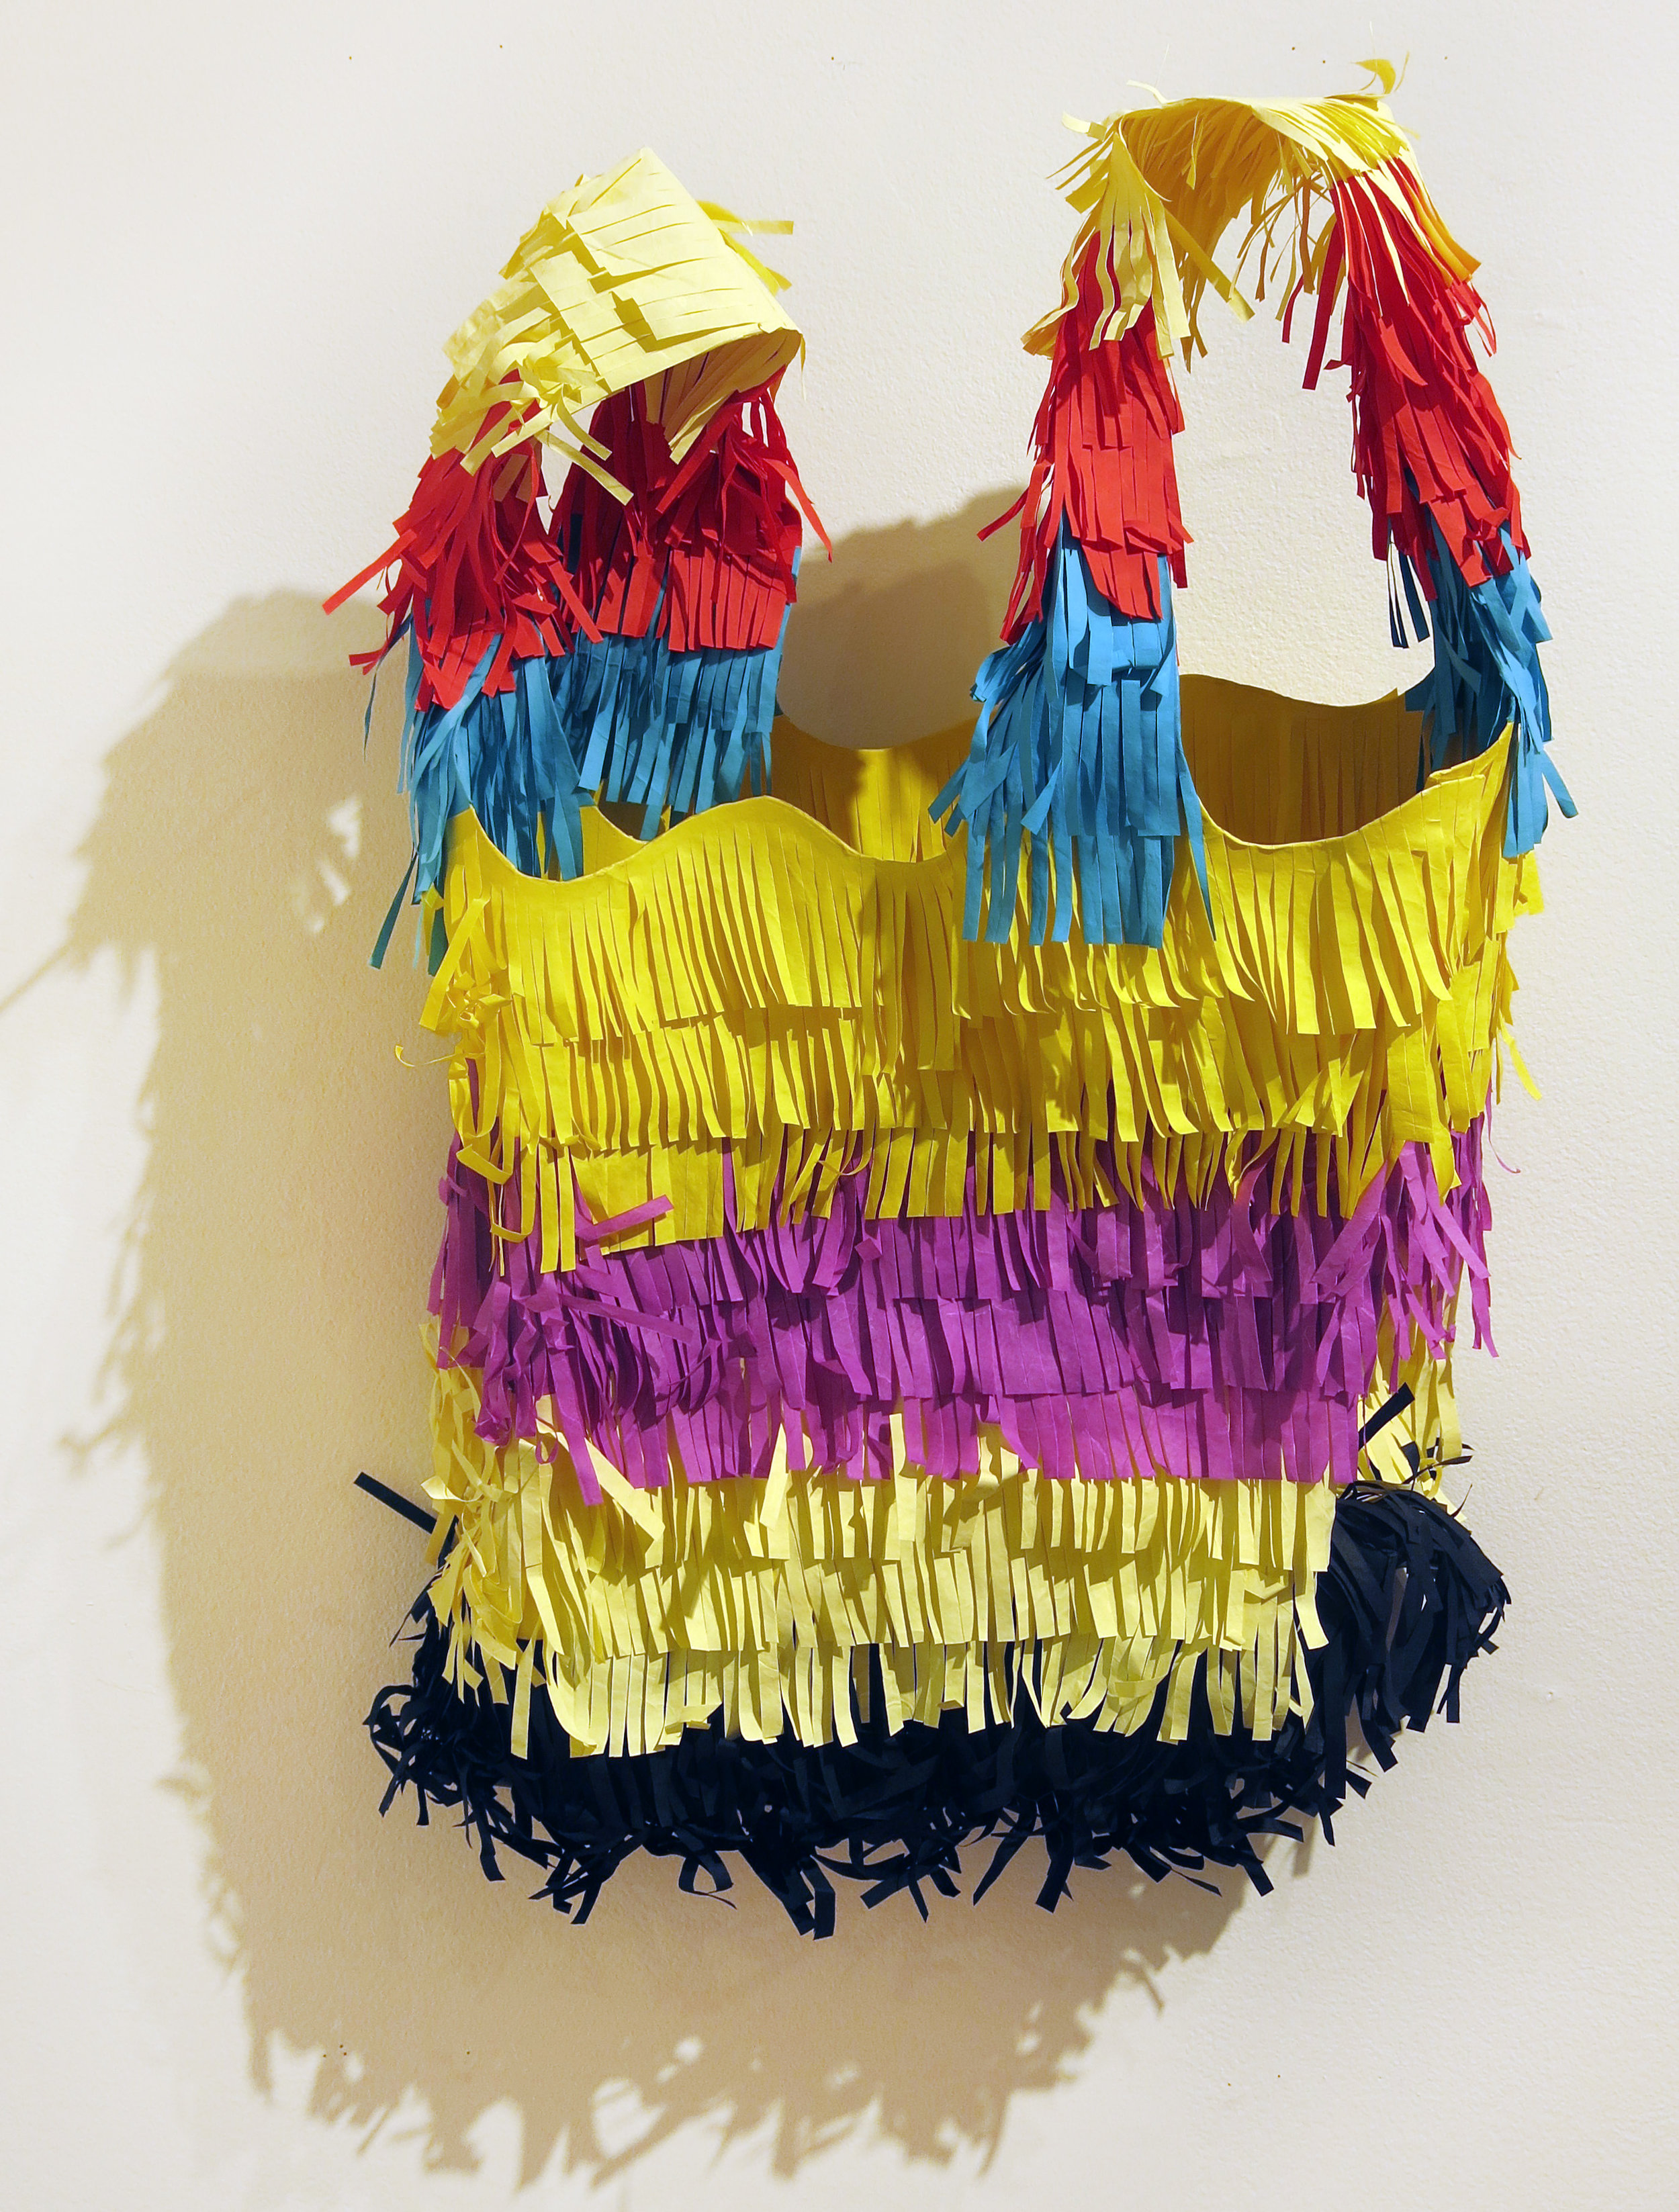 Billy Copley,  Large Piñata Bag (in Honor of Mexican Immigrant Appreciation Day),  2017, Hand painted paper collages on formed paper, 25h x 19w x 6d